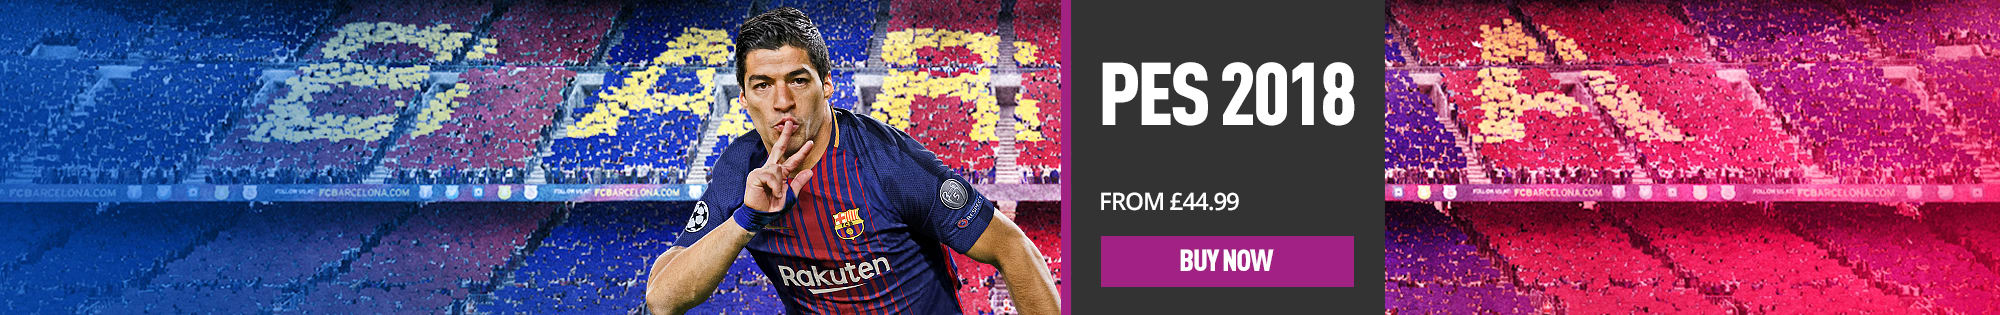 PES 2018 - Buy Now! - Homepage Banner